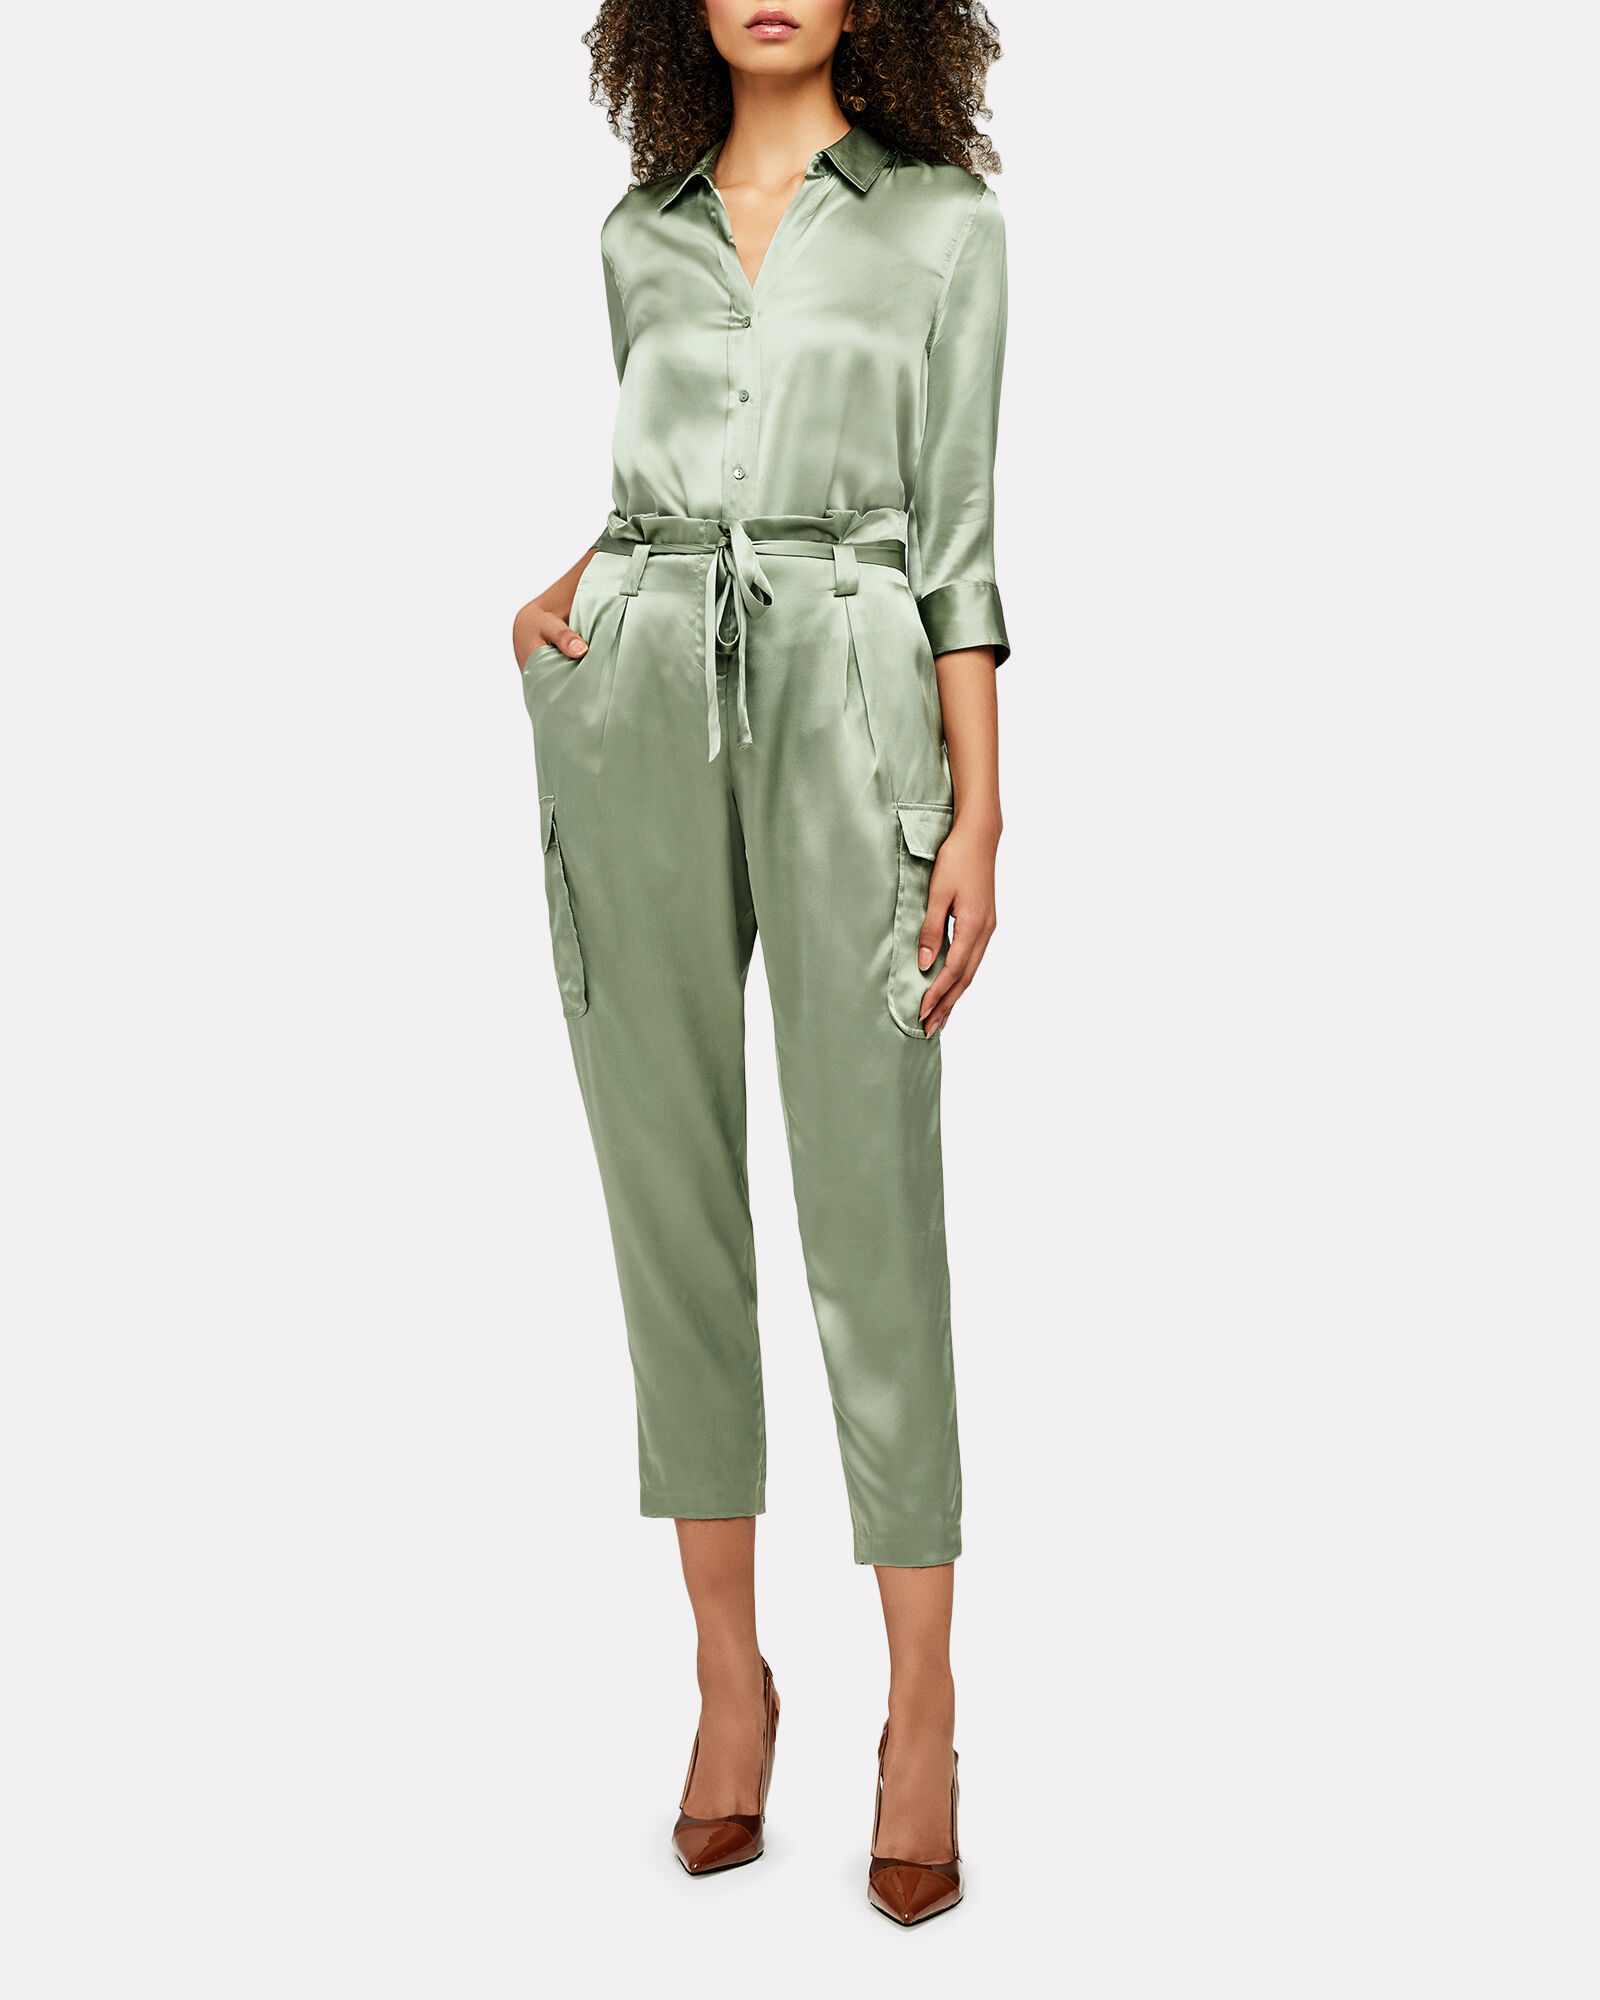 Roxy Silk Paperbag Cargo Pants, OLIVE/ARMY, hi-res